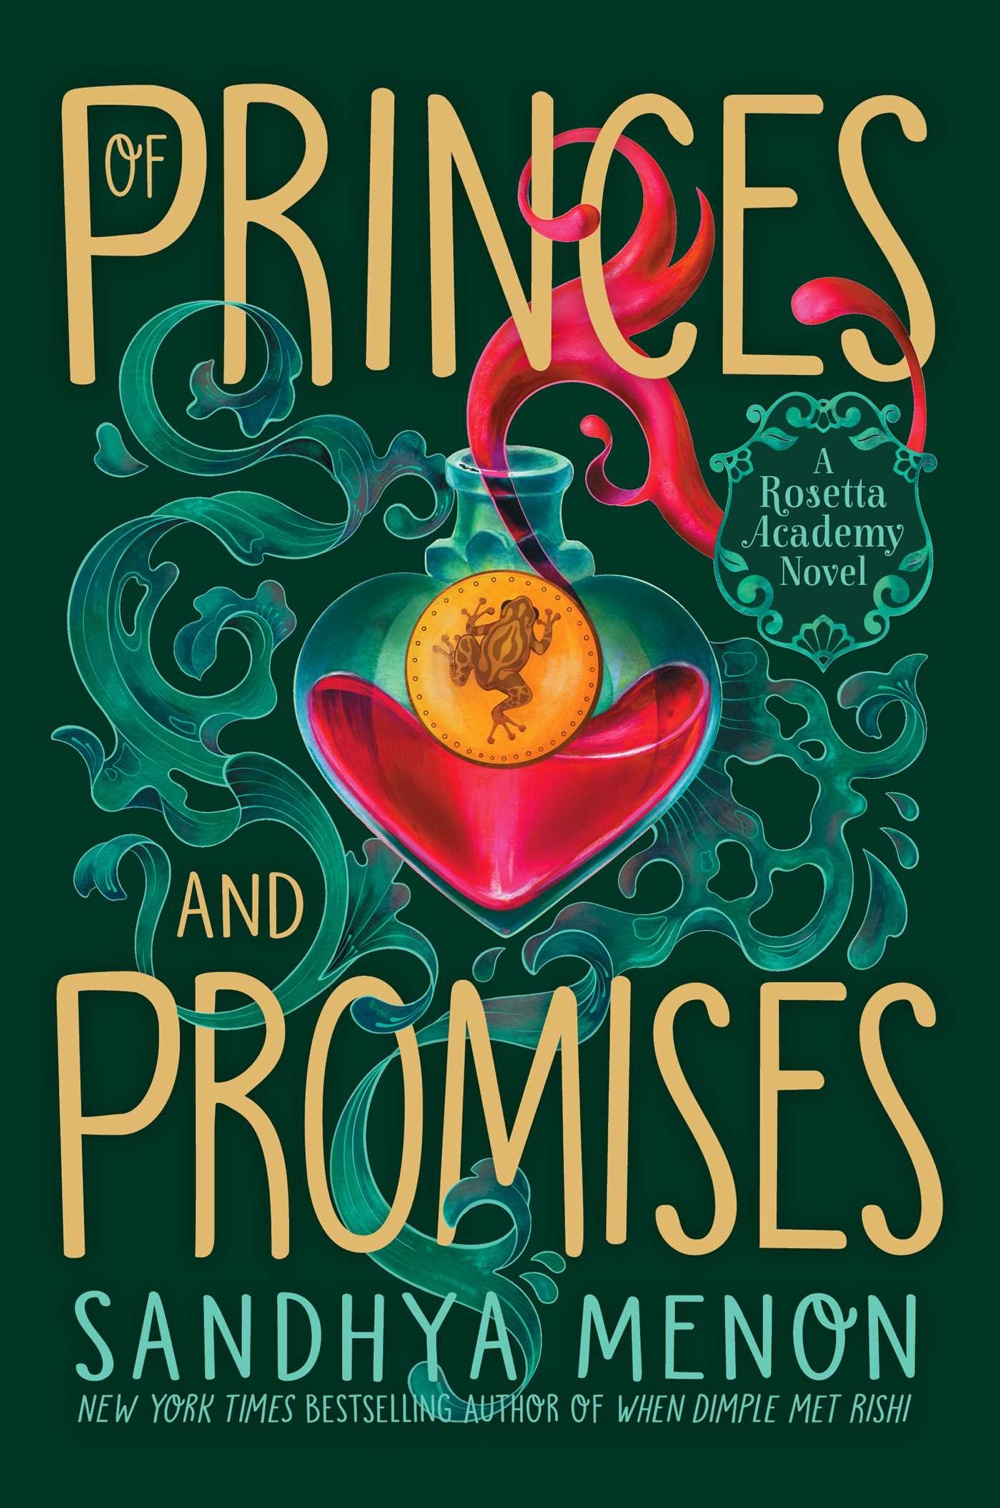 Of Princes and Promises by Sandhya Menon | Book Review